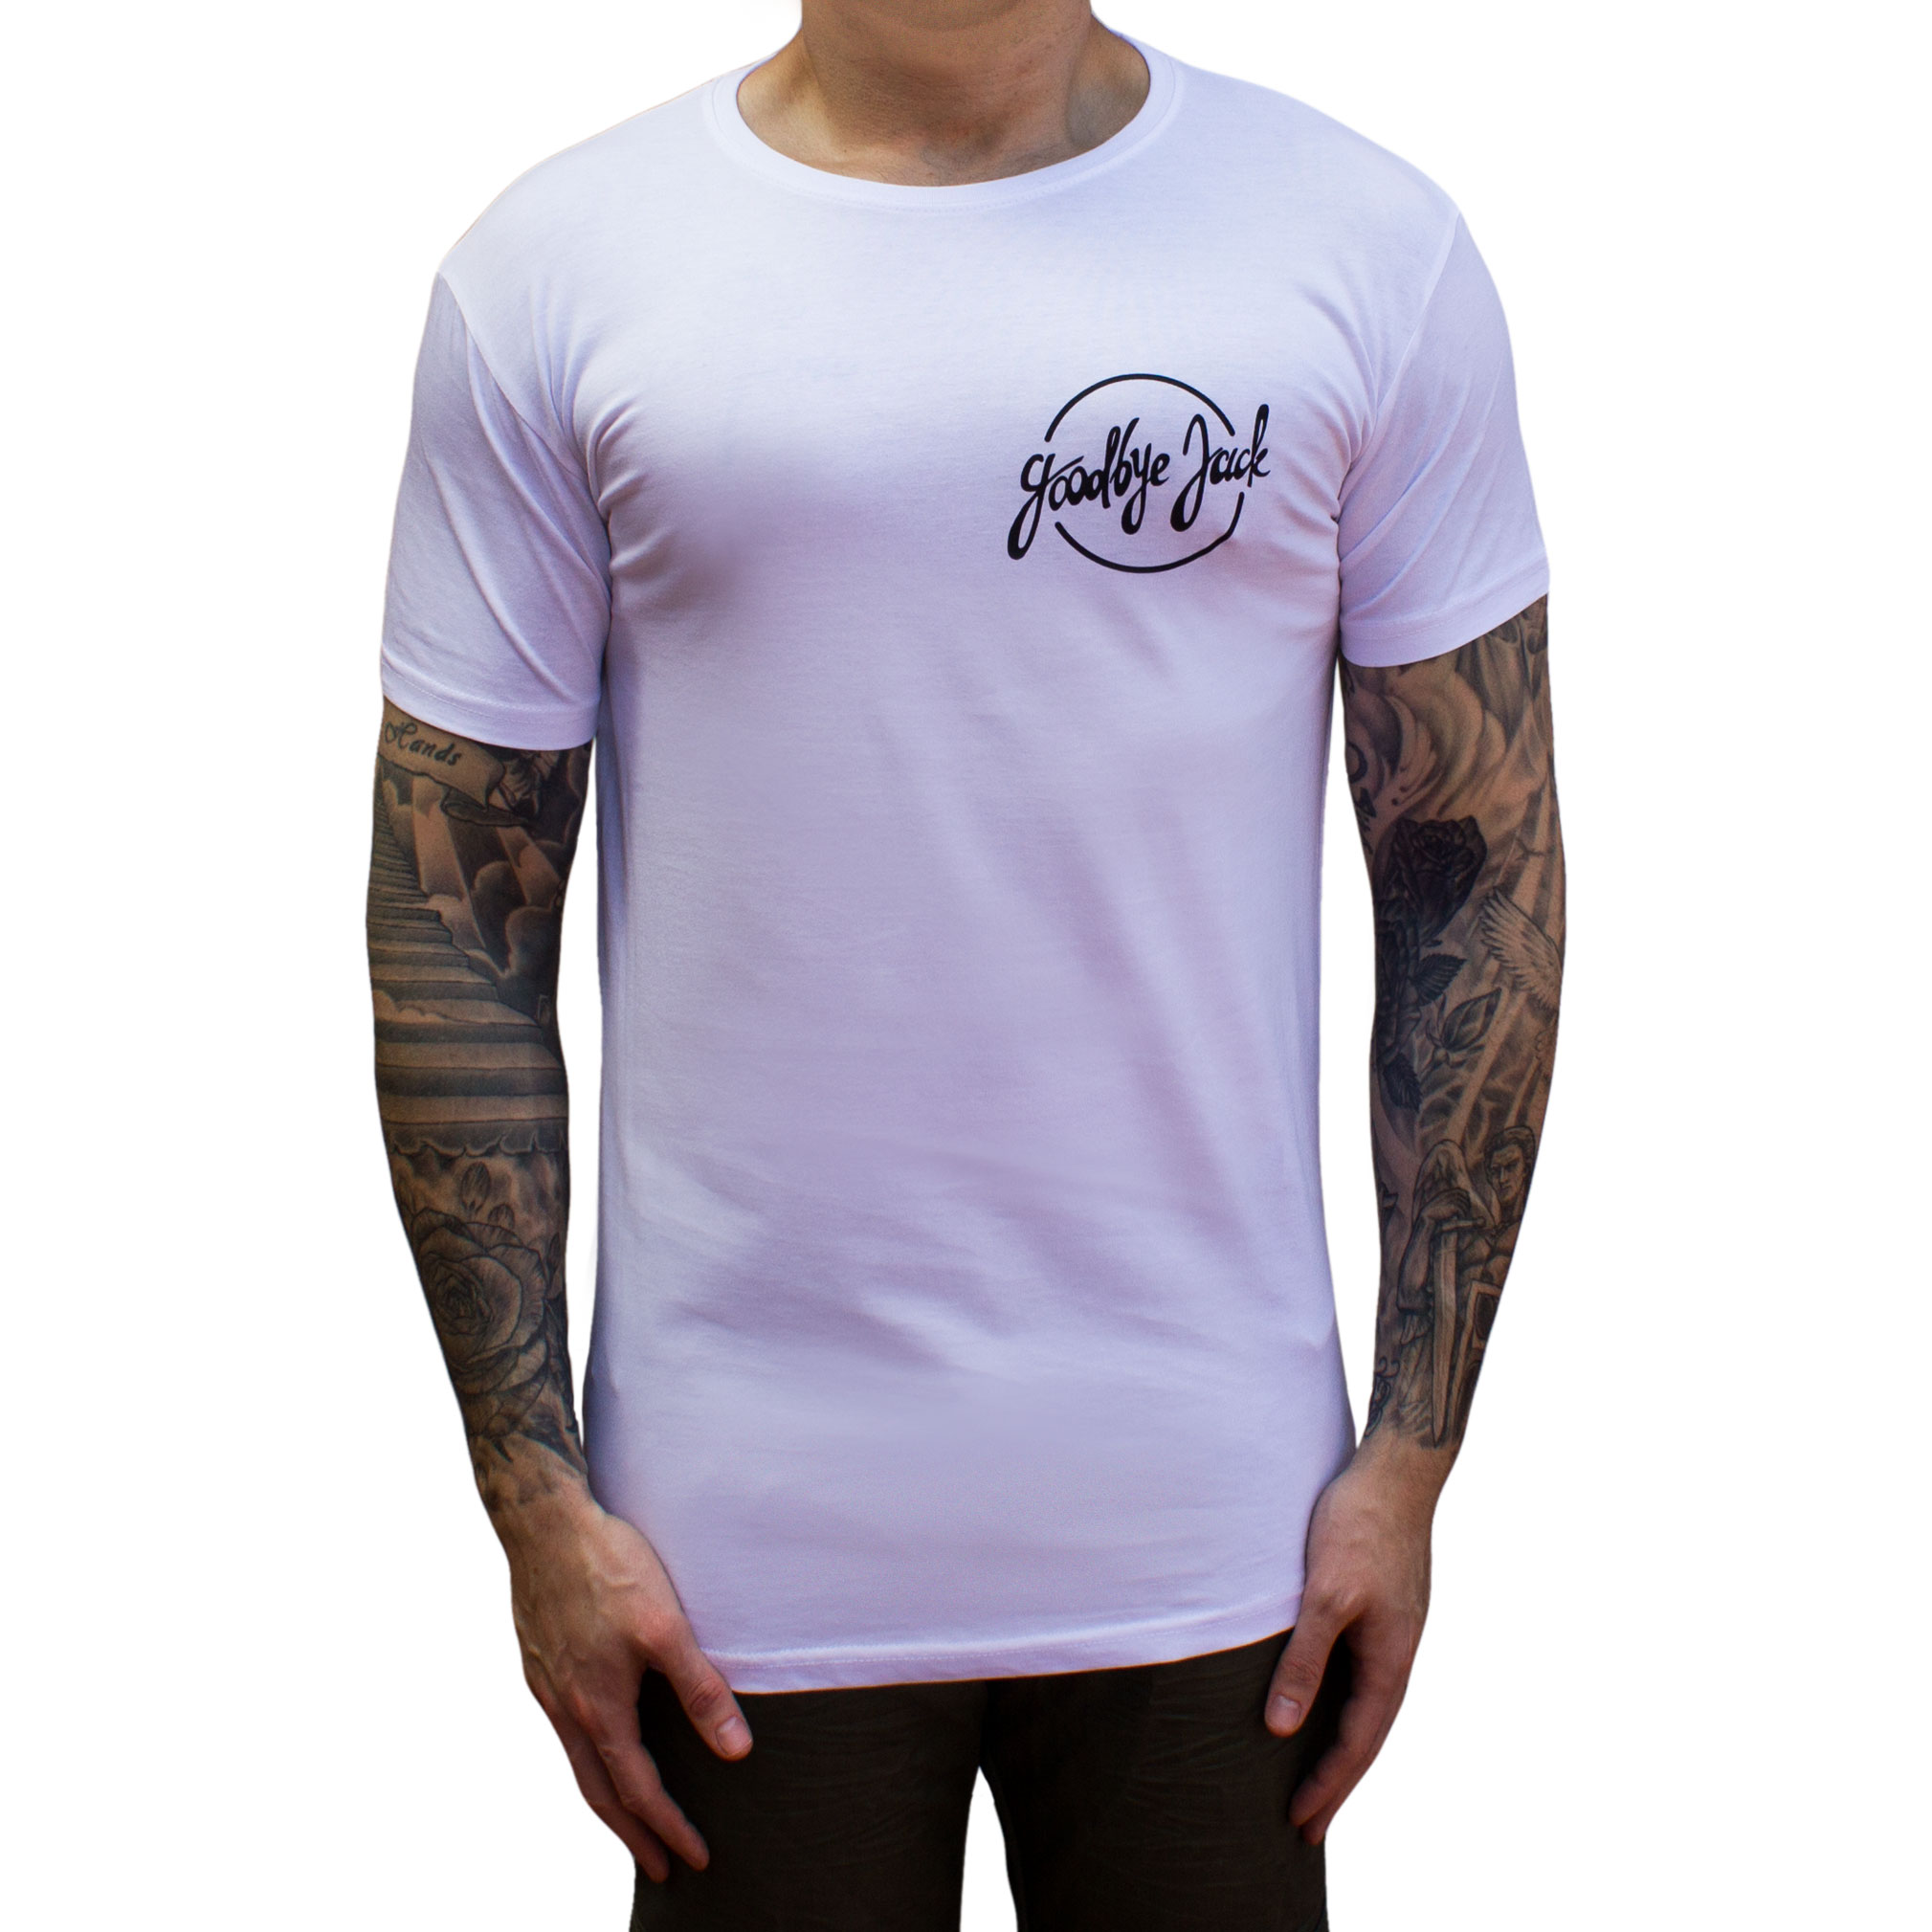 Original Tee Droptail White